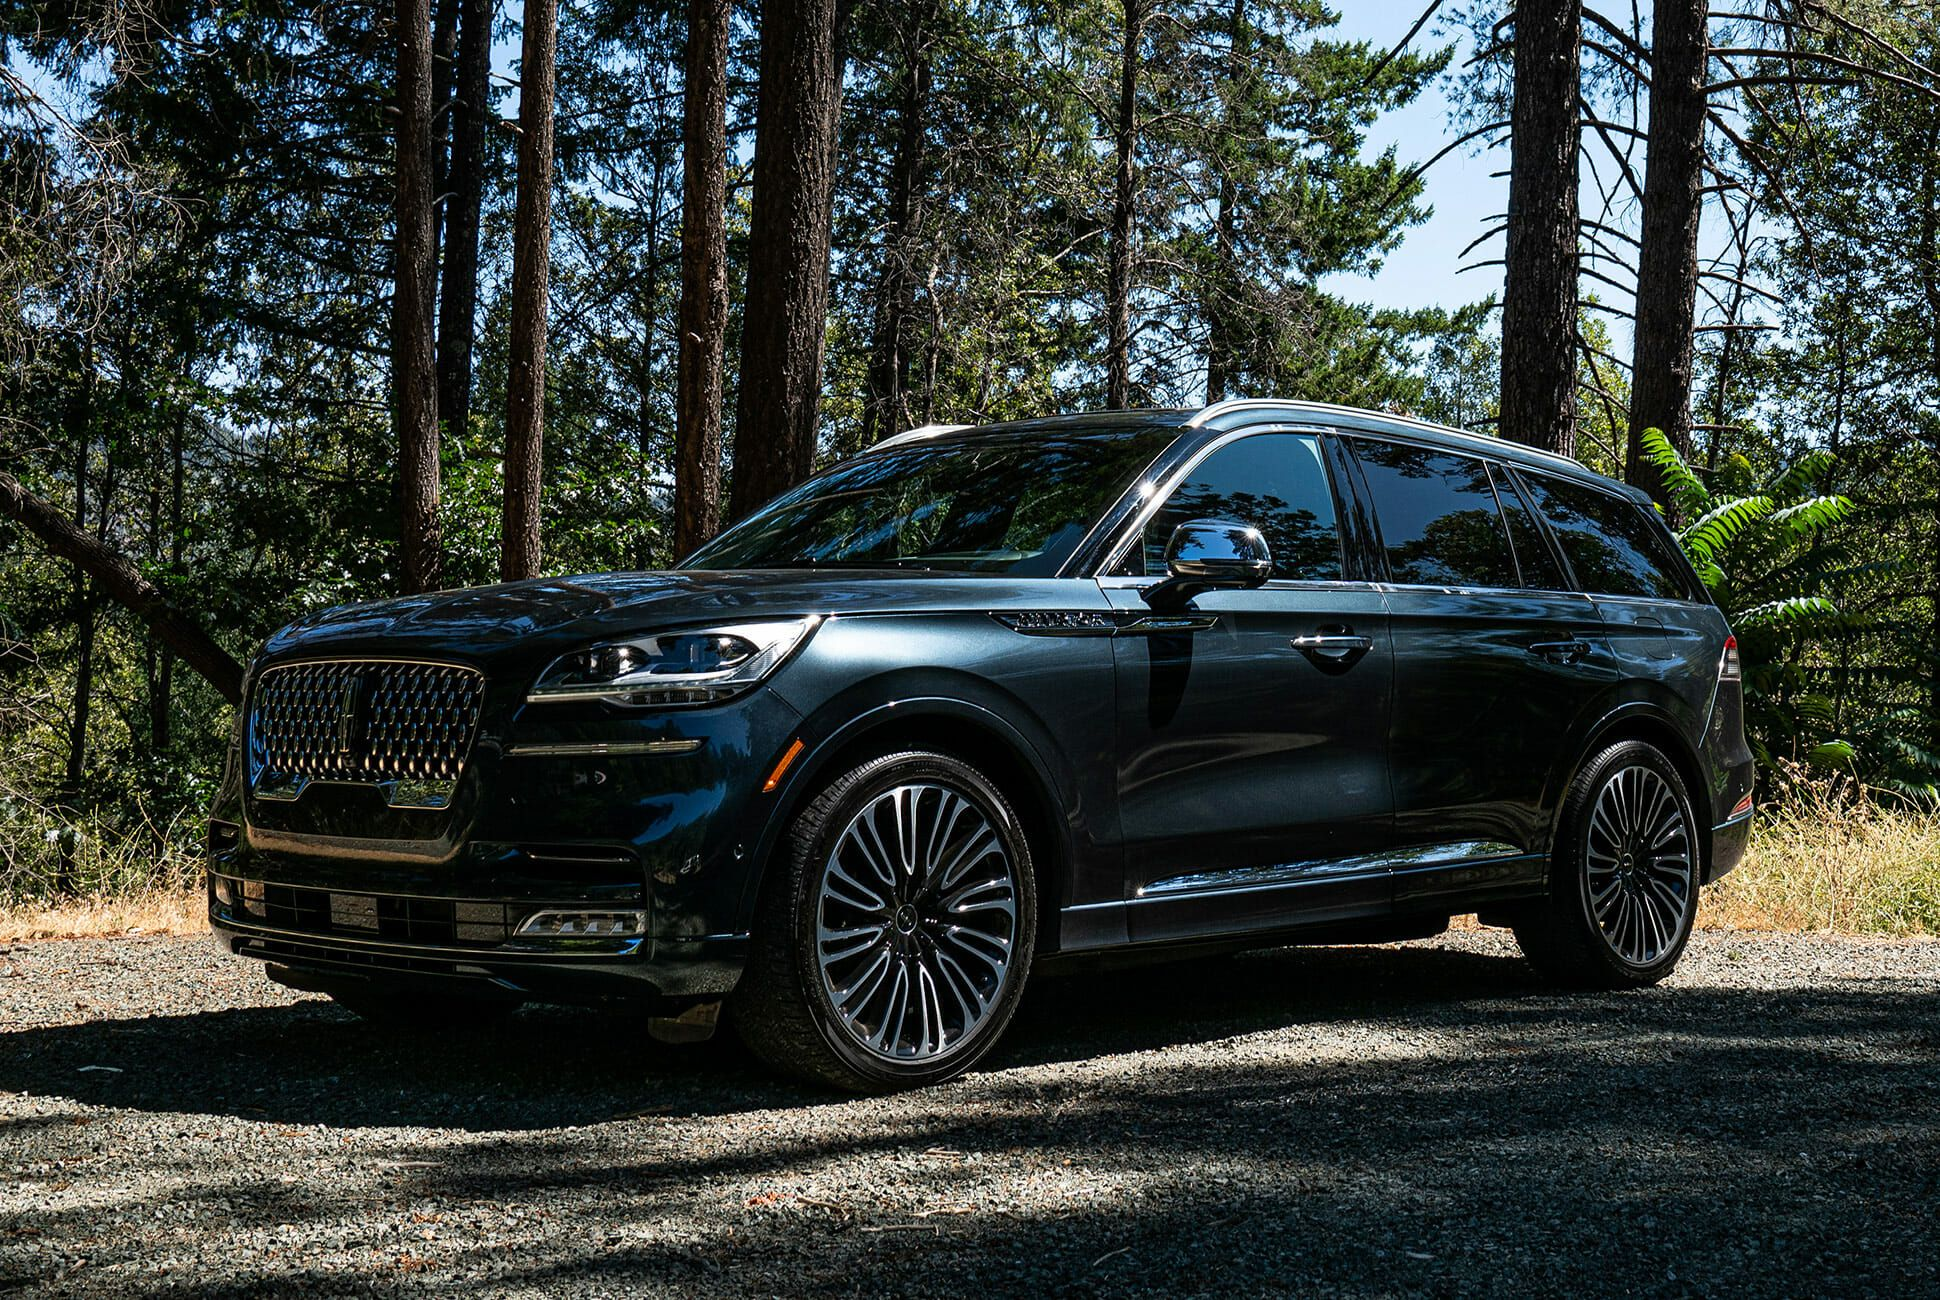 2020-Lincoln-Aviator-Review-gear-patrol-lead-slide-1